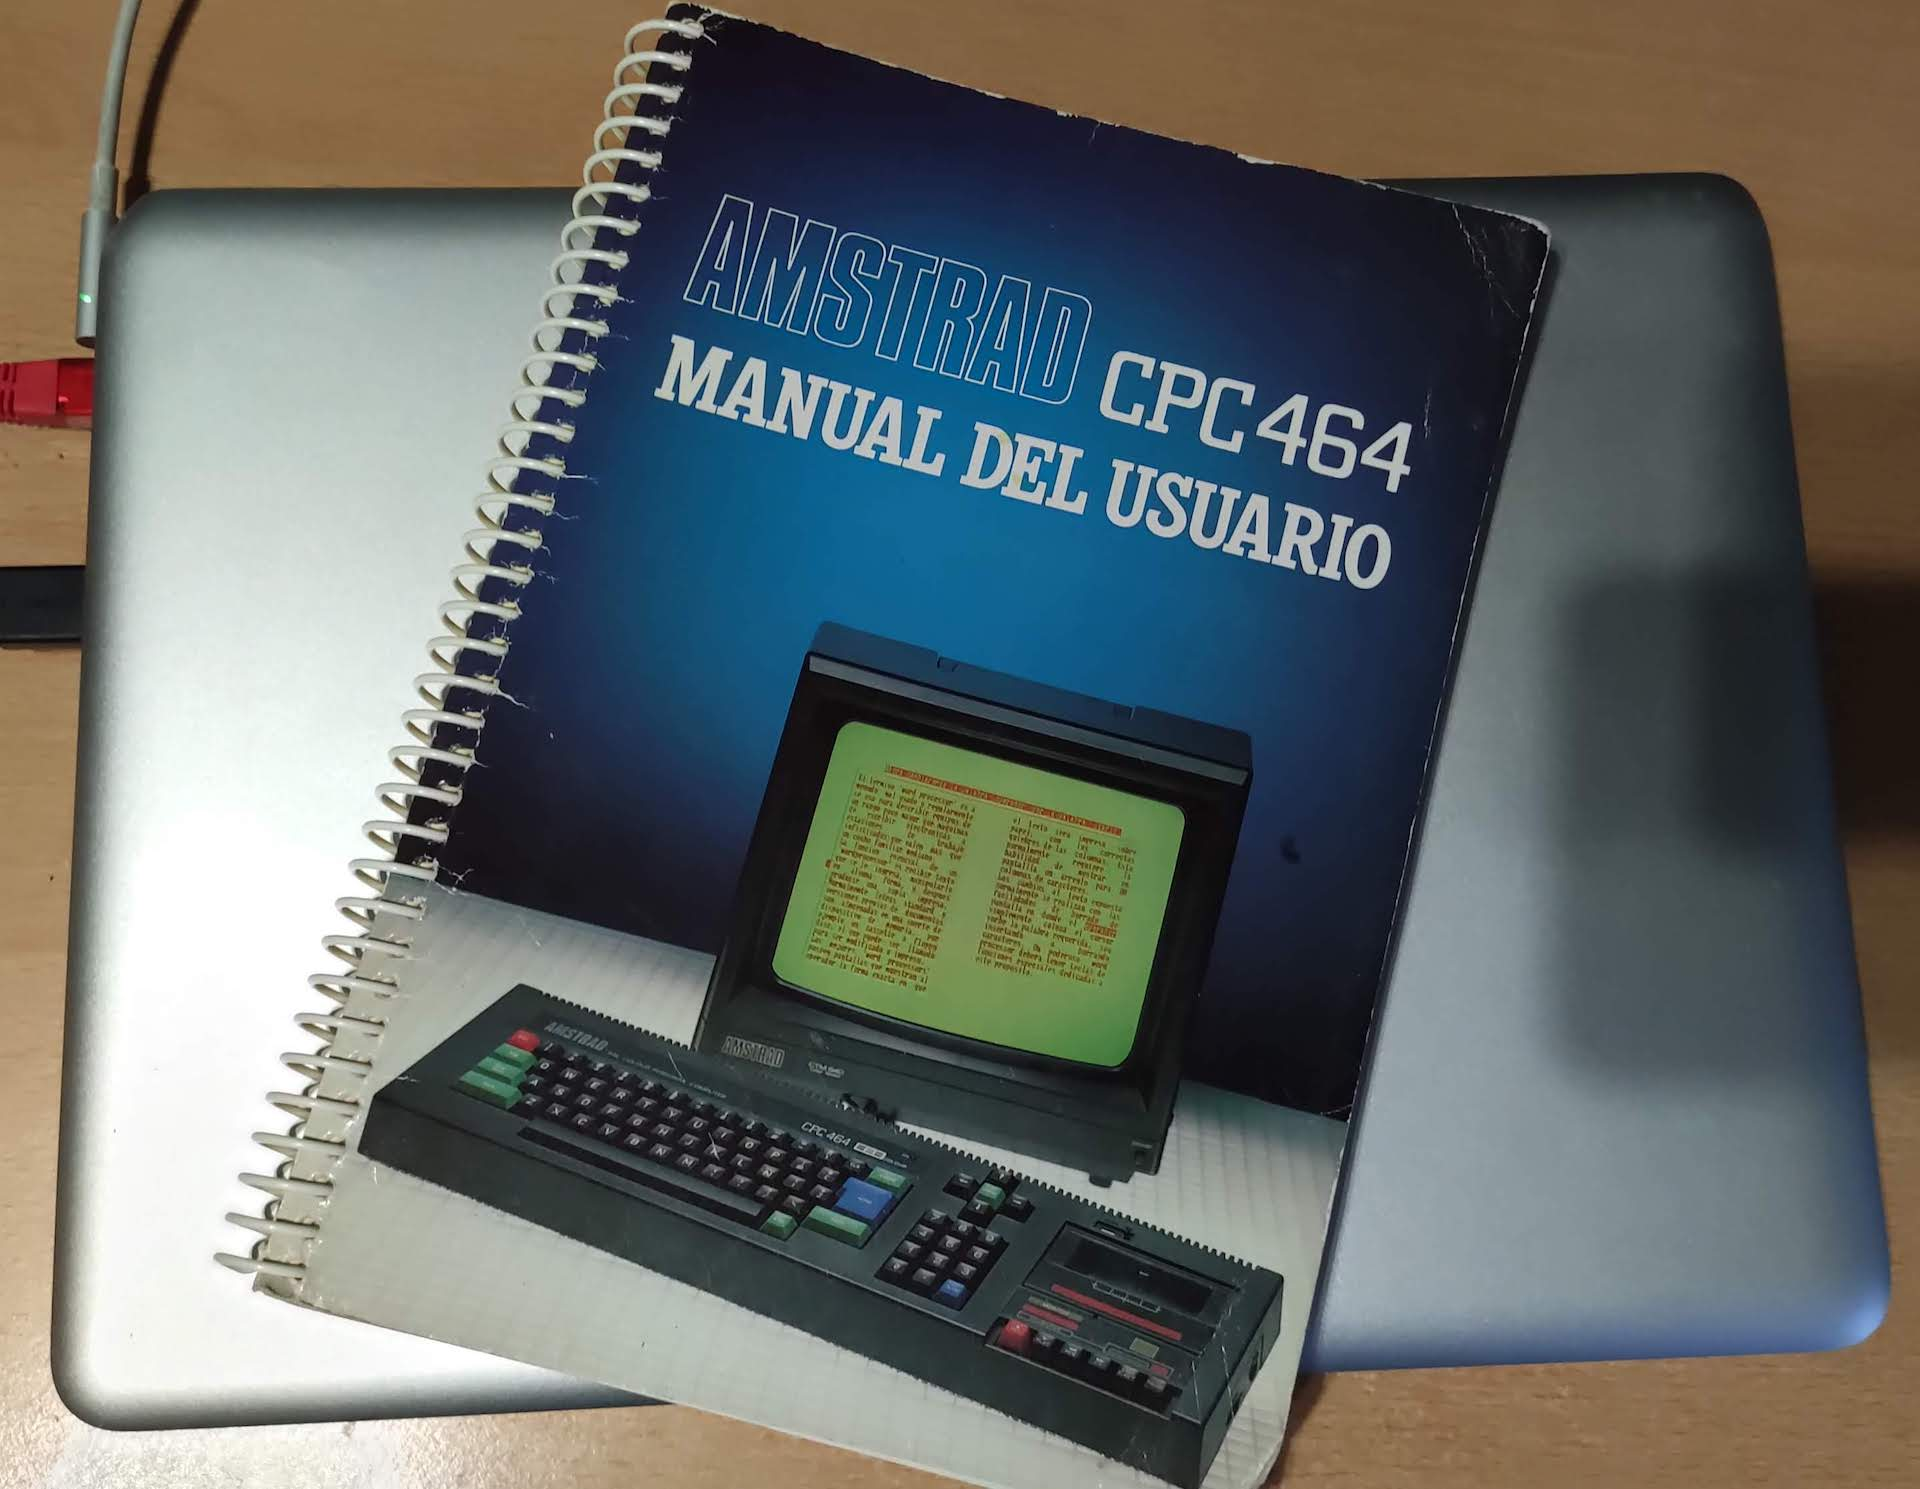 Manual de usuario del Amstrad CPC 464